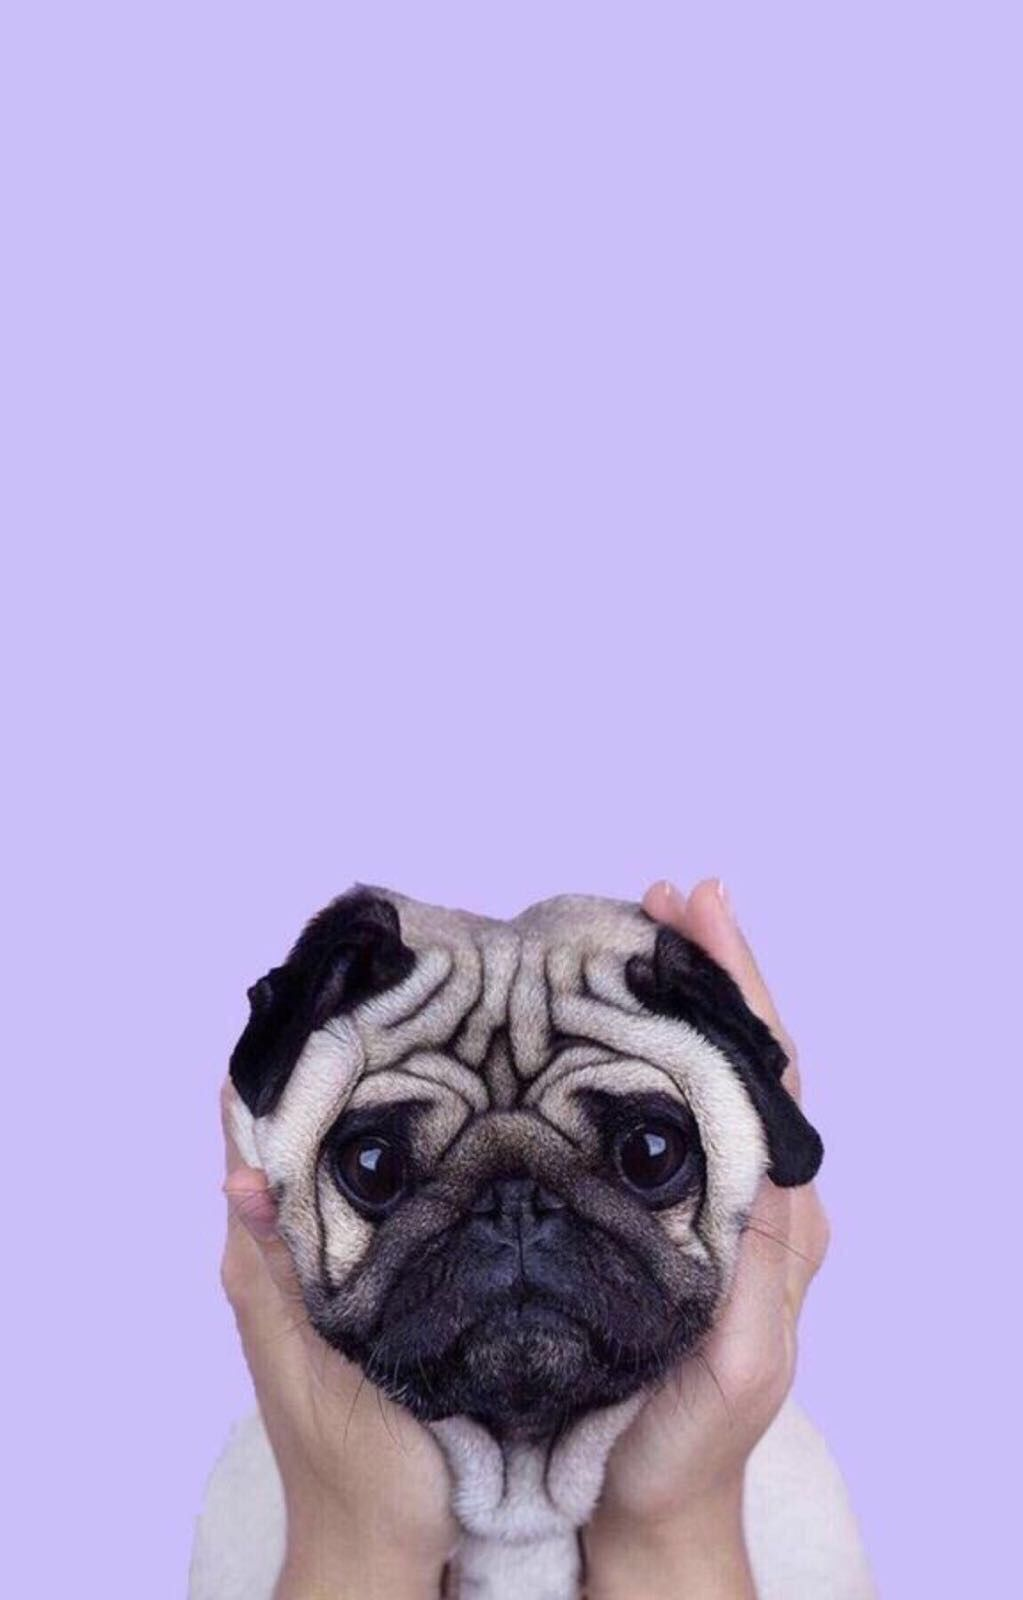 Pin by Hilal on Hilo in 2019 Dog wallpaper iphone, Cute